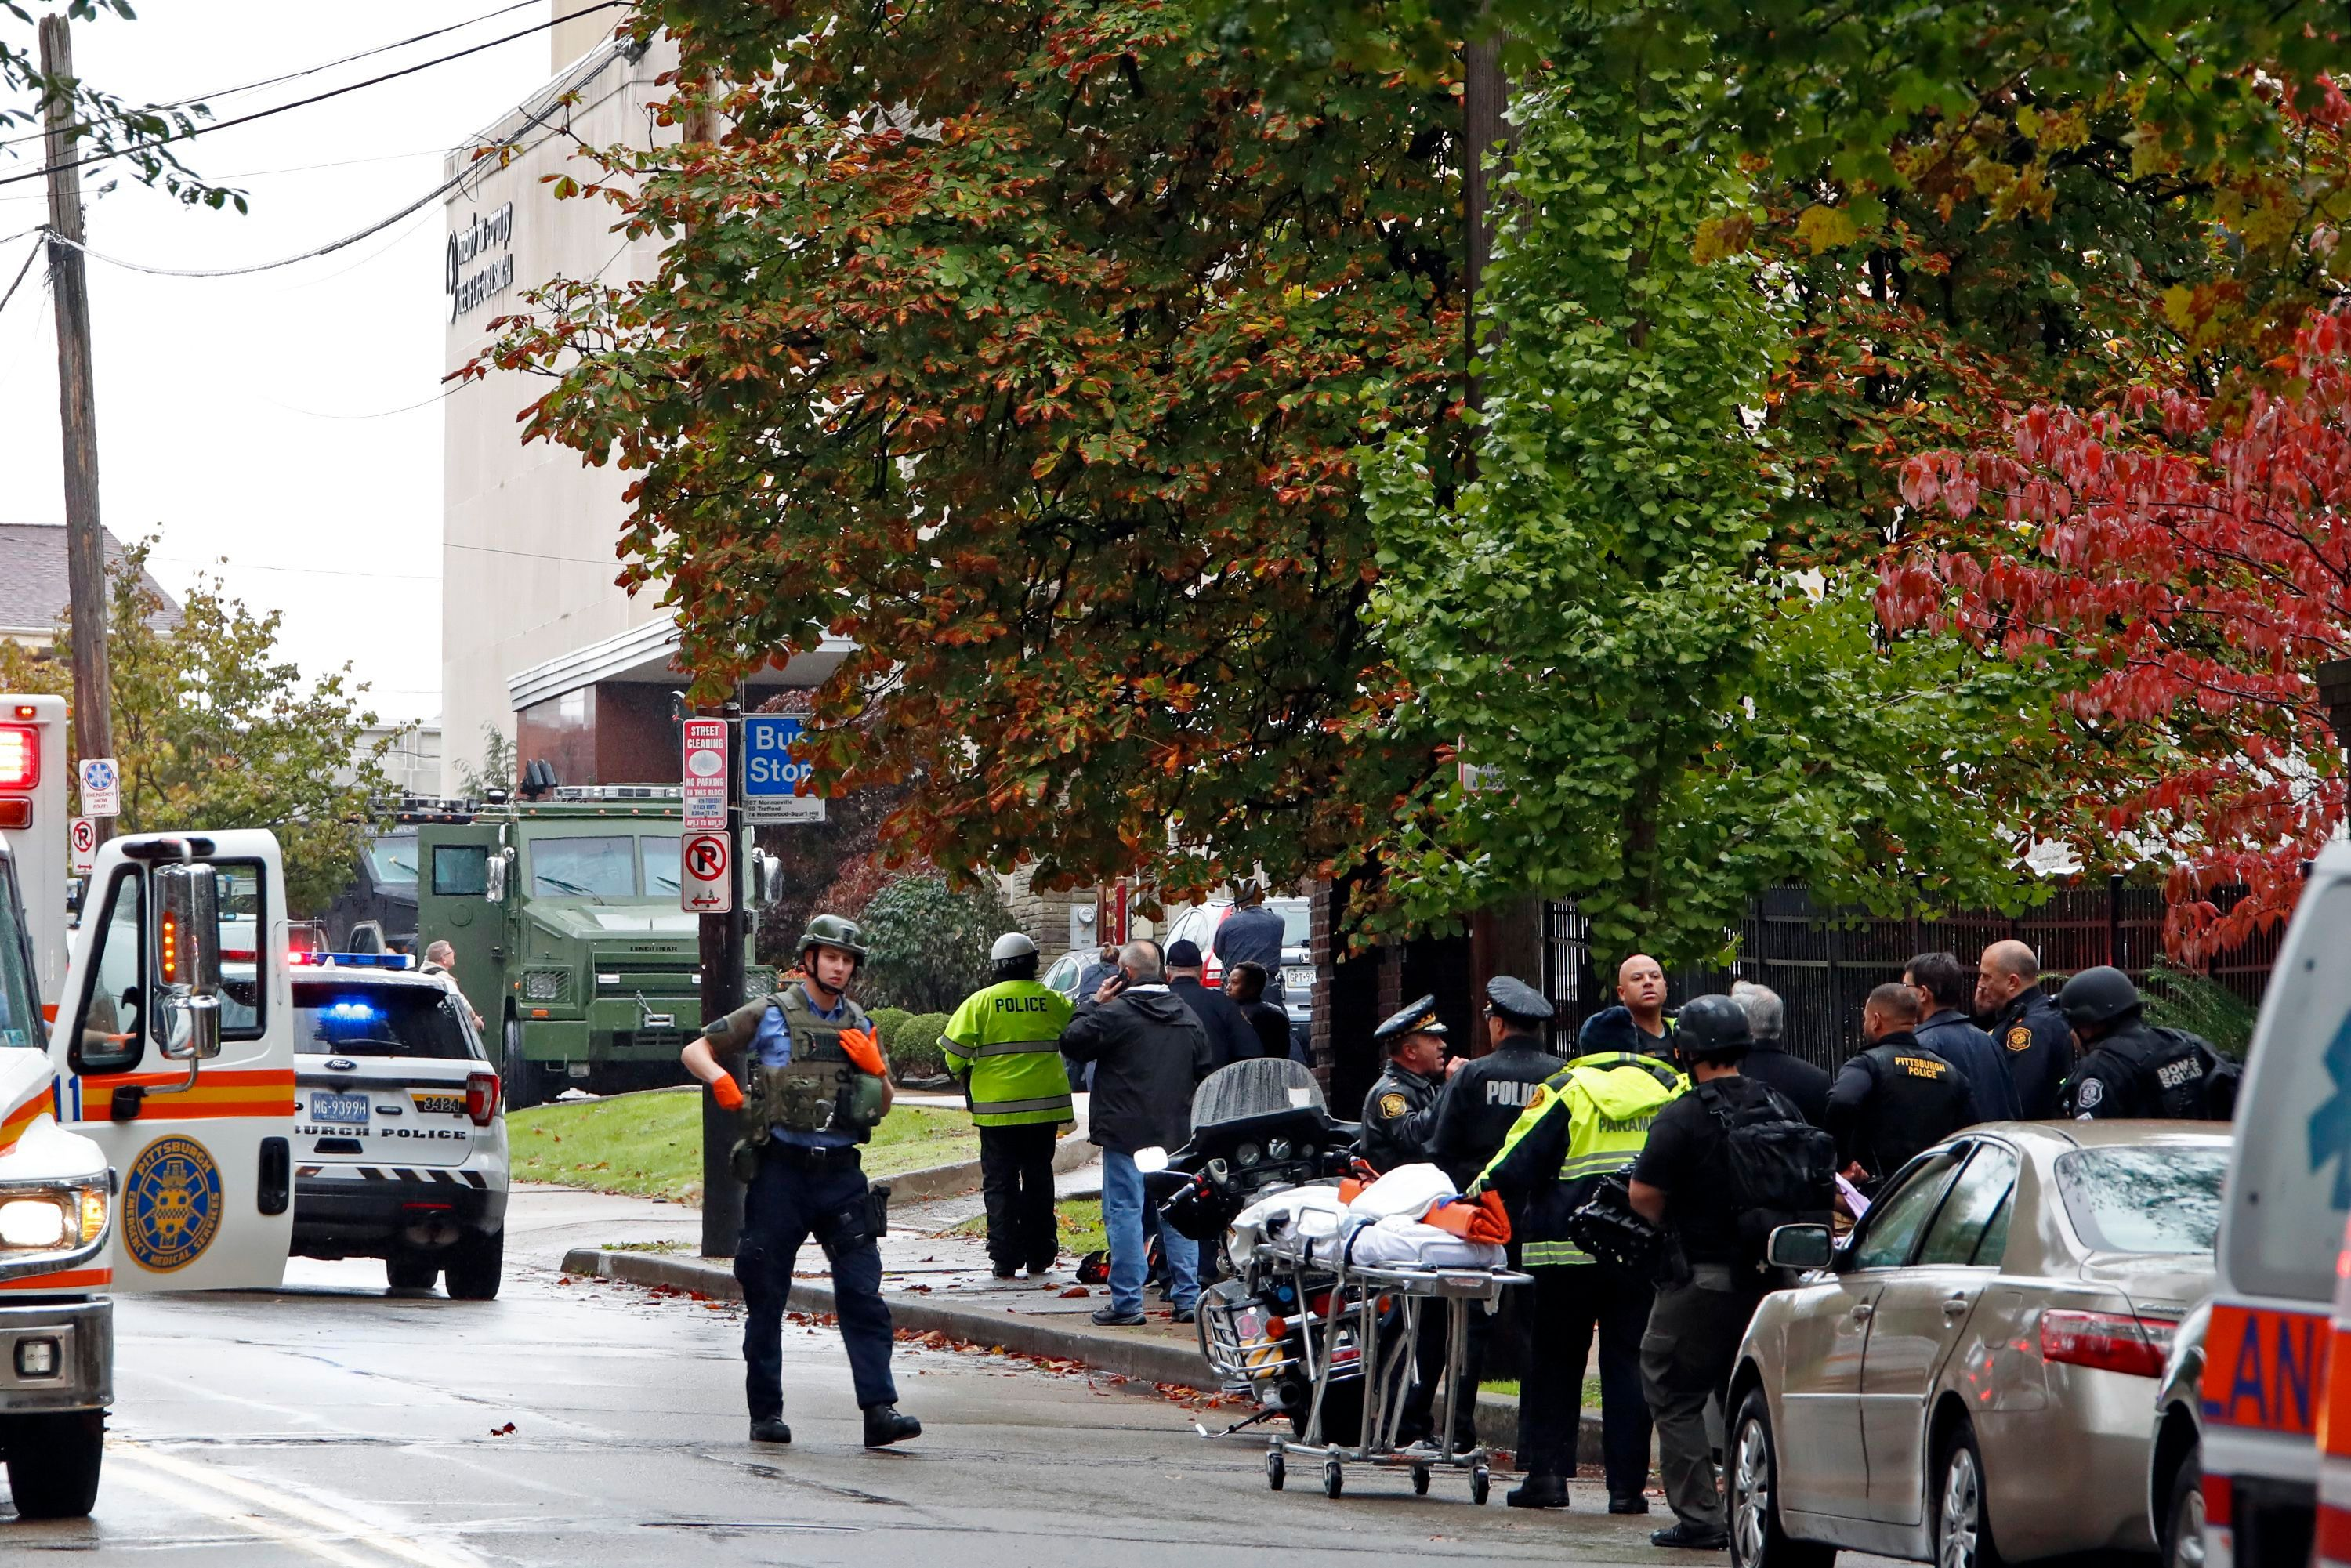 First responders surround the Tree of Life Synagogue where a shooter opened fire.